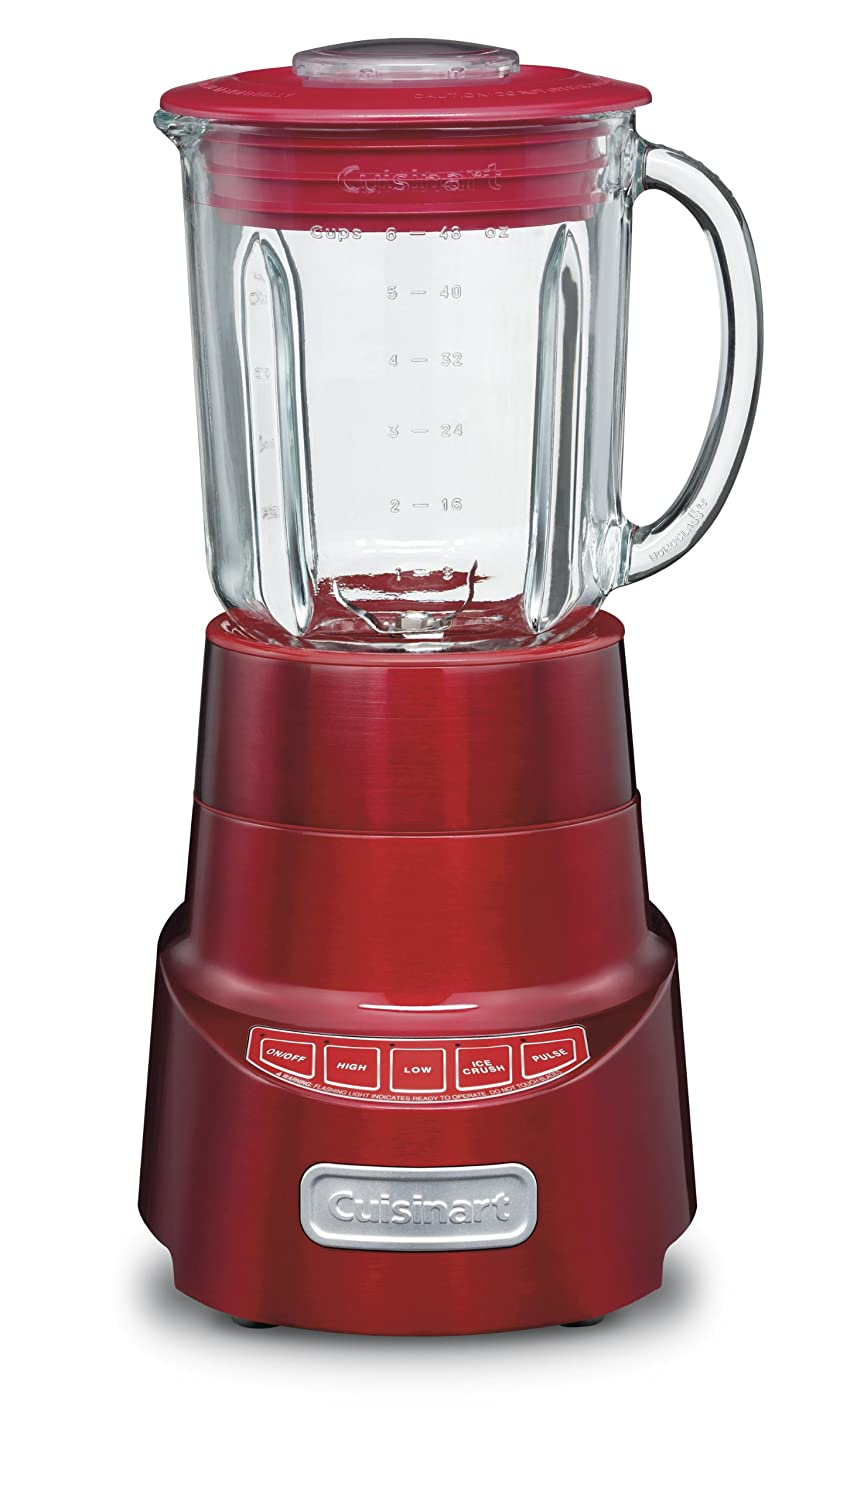 Cuisinart Blender In Red